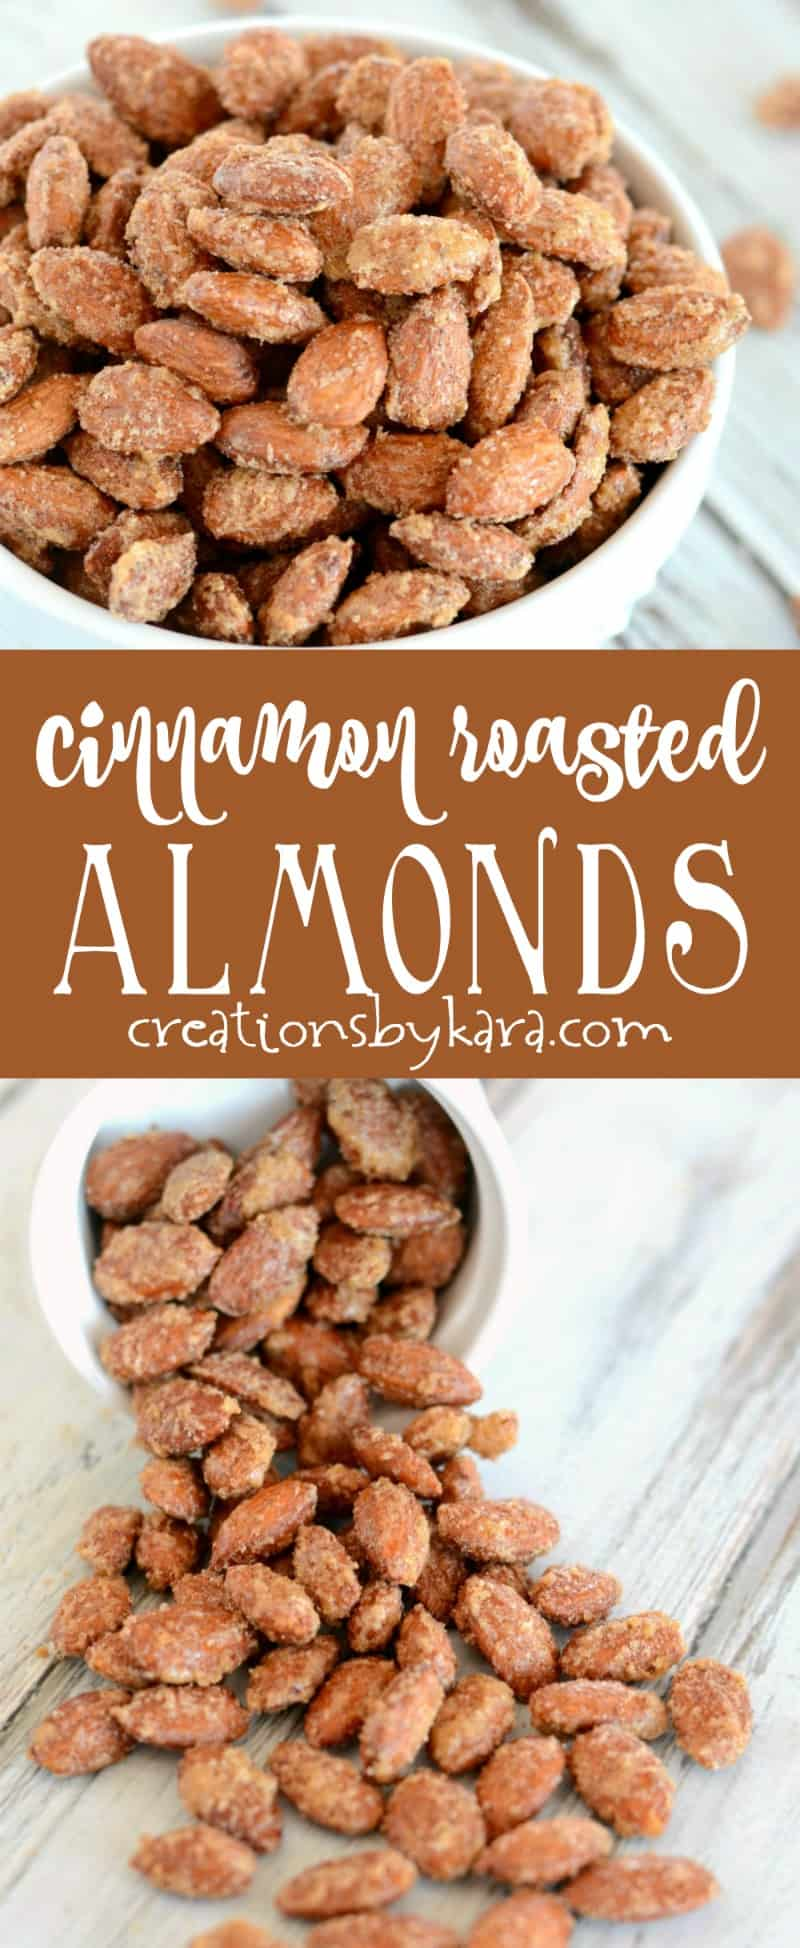 Simple Cinnamon Roasted Almonds are always a favorite snack! Easy and addicting. #almonds #snacks #cinnamon